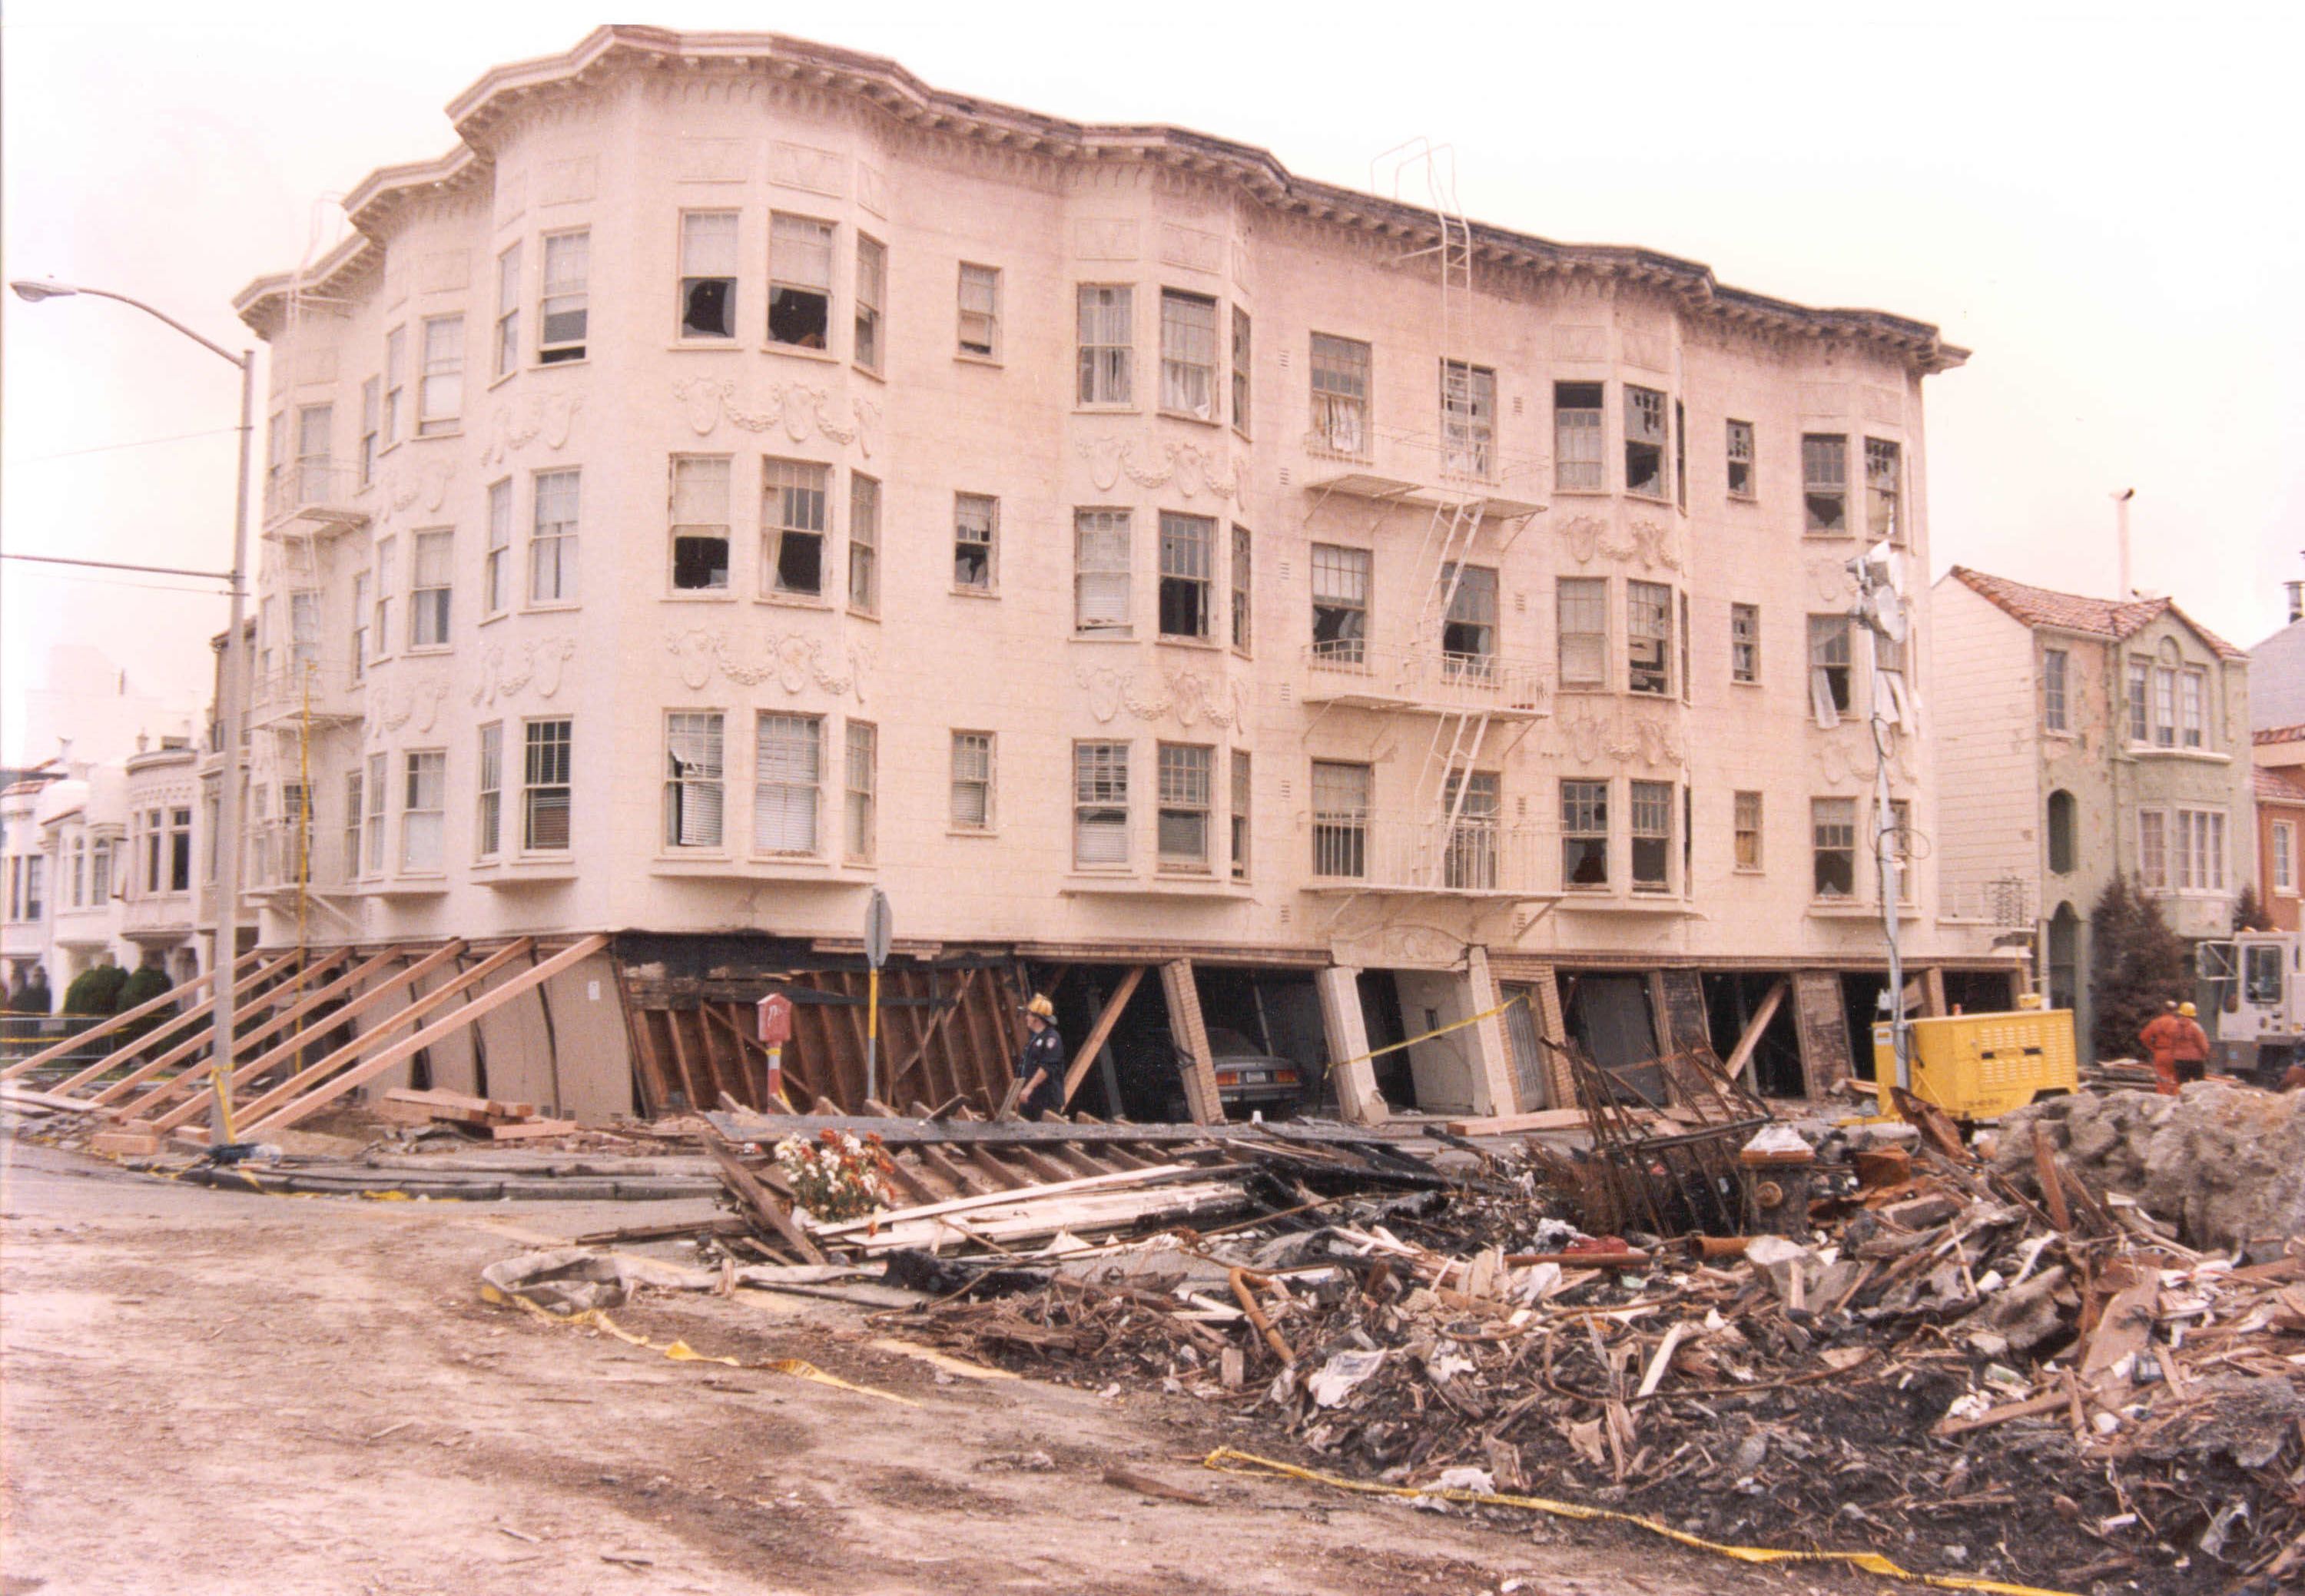 Enco-Website-Loma-Prieta-Earthquake-1989-1.jpg